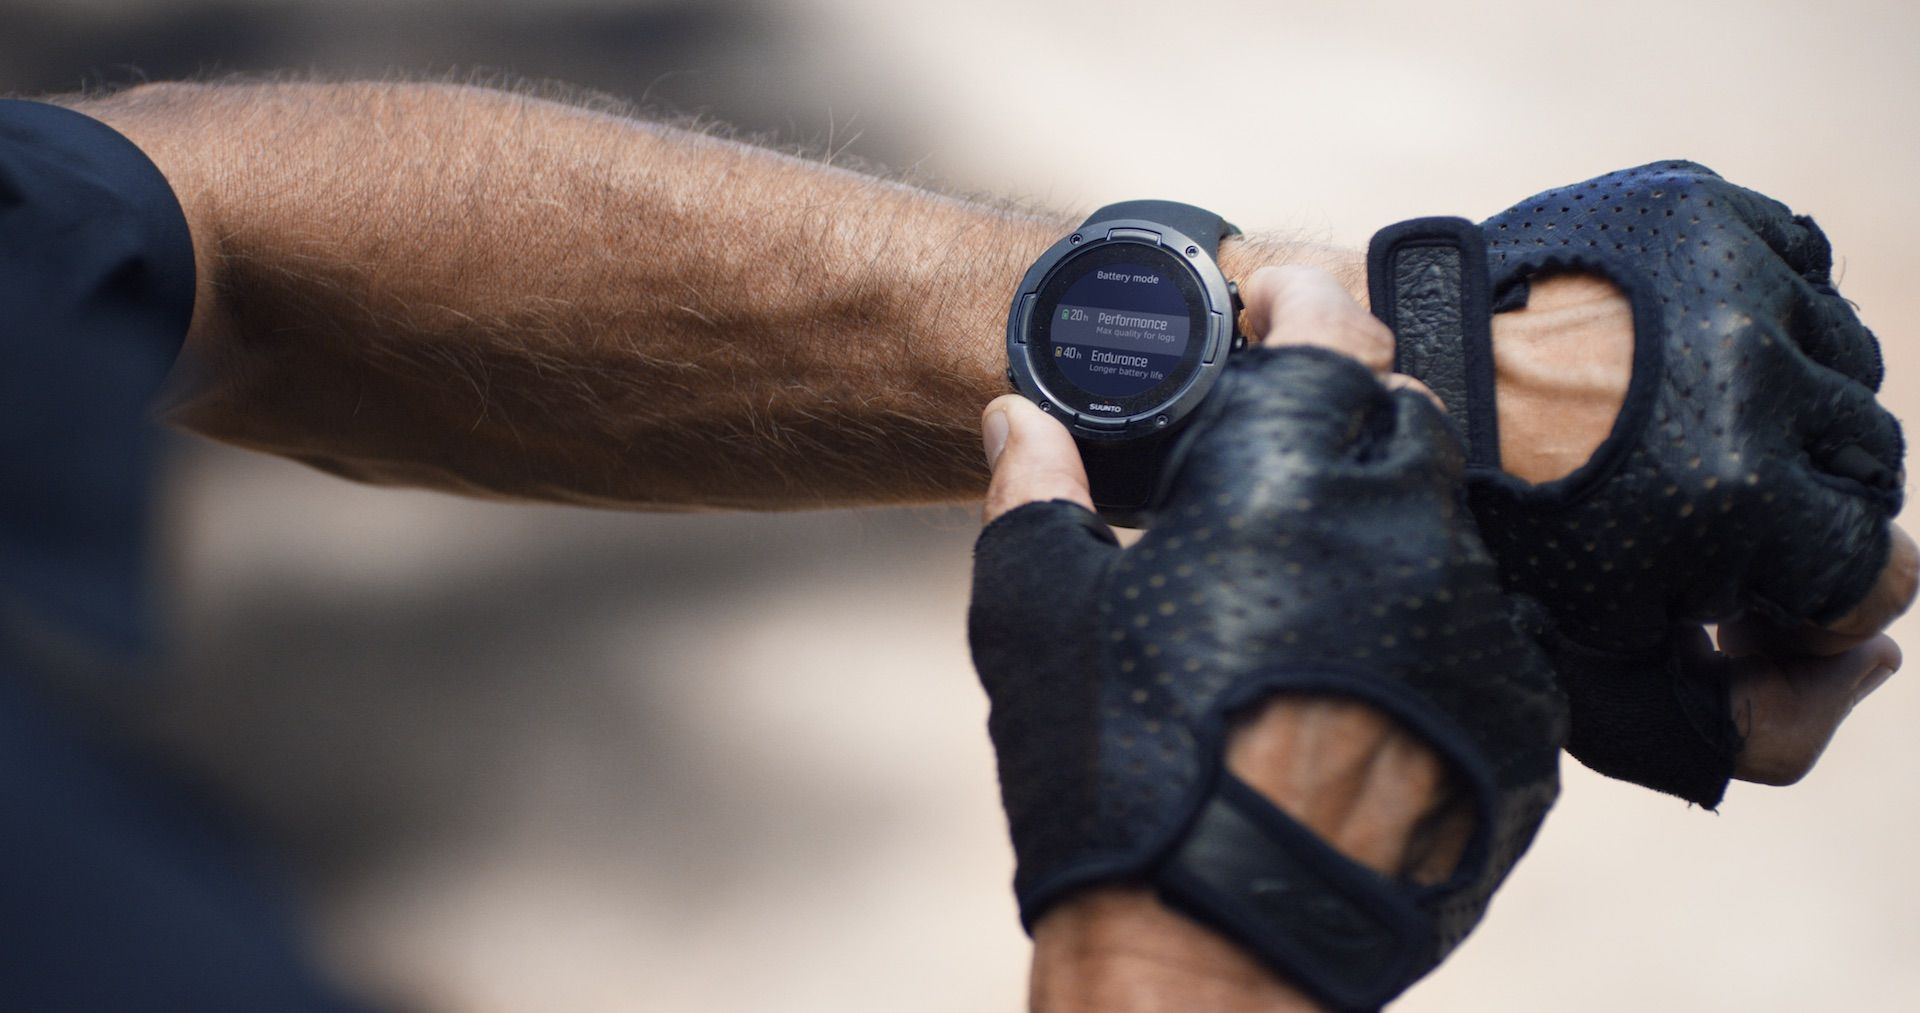 What We Loved About the Suunto 5 Smartwatch